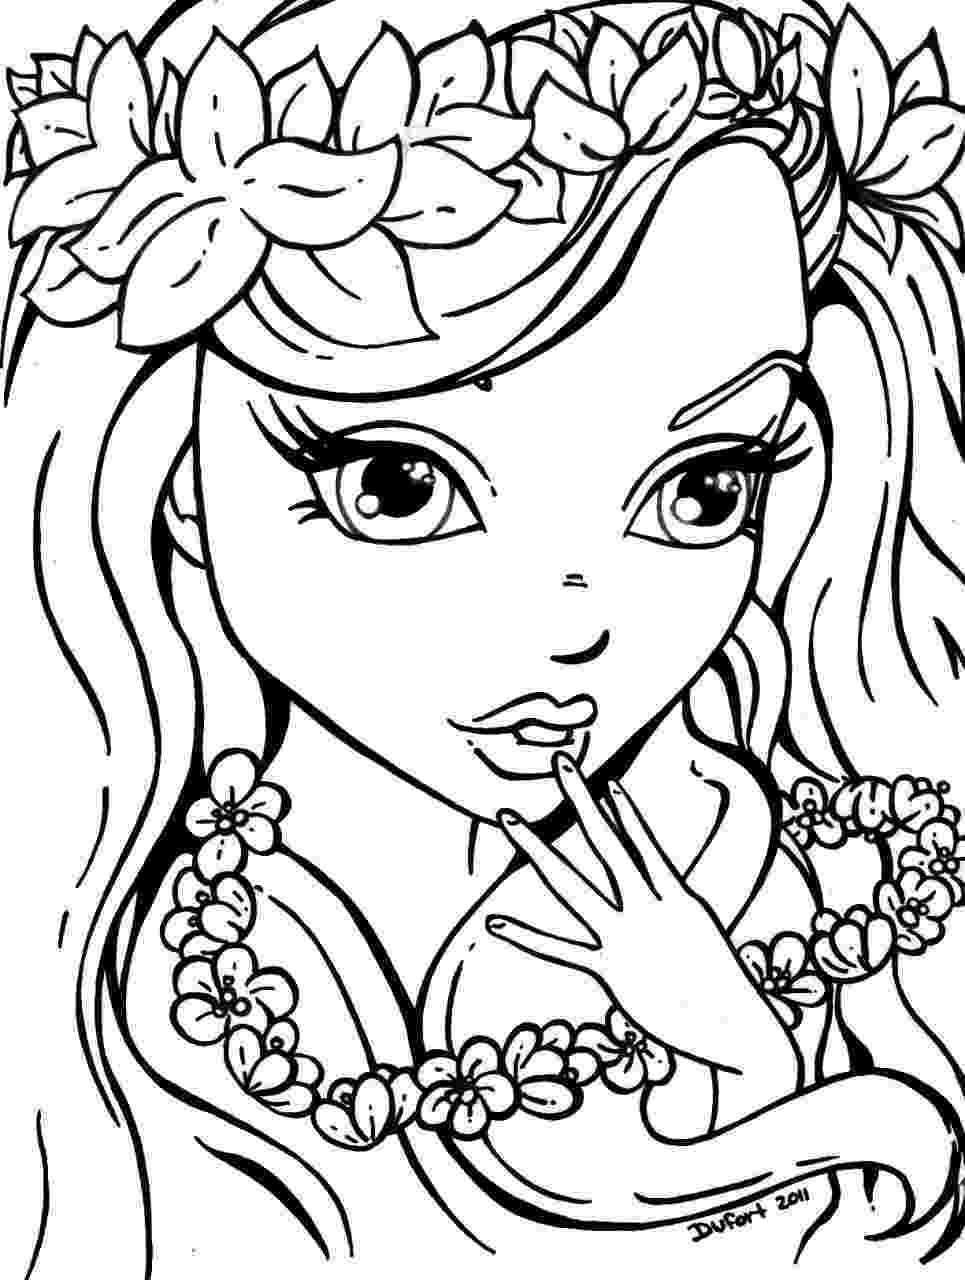 coloring pages for girls printable printable coloring pages for girls sarah titus girls for pages printable coloring